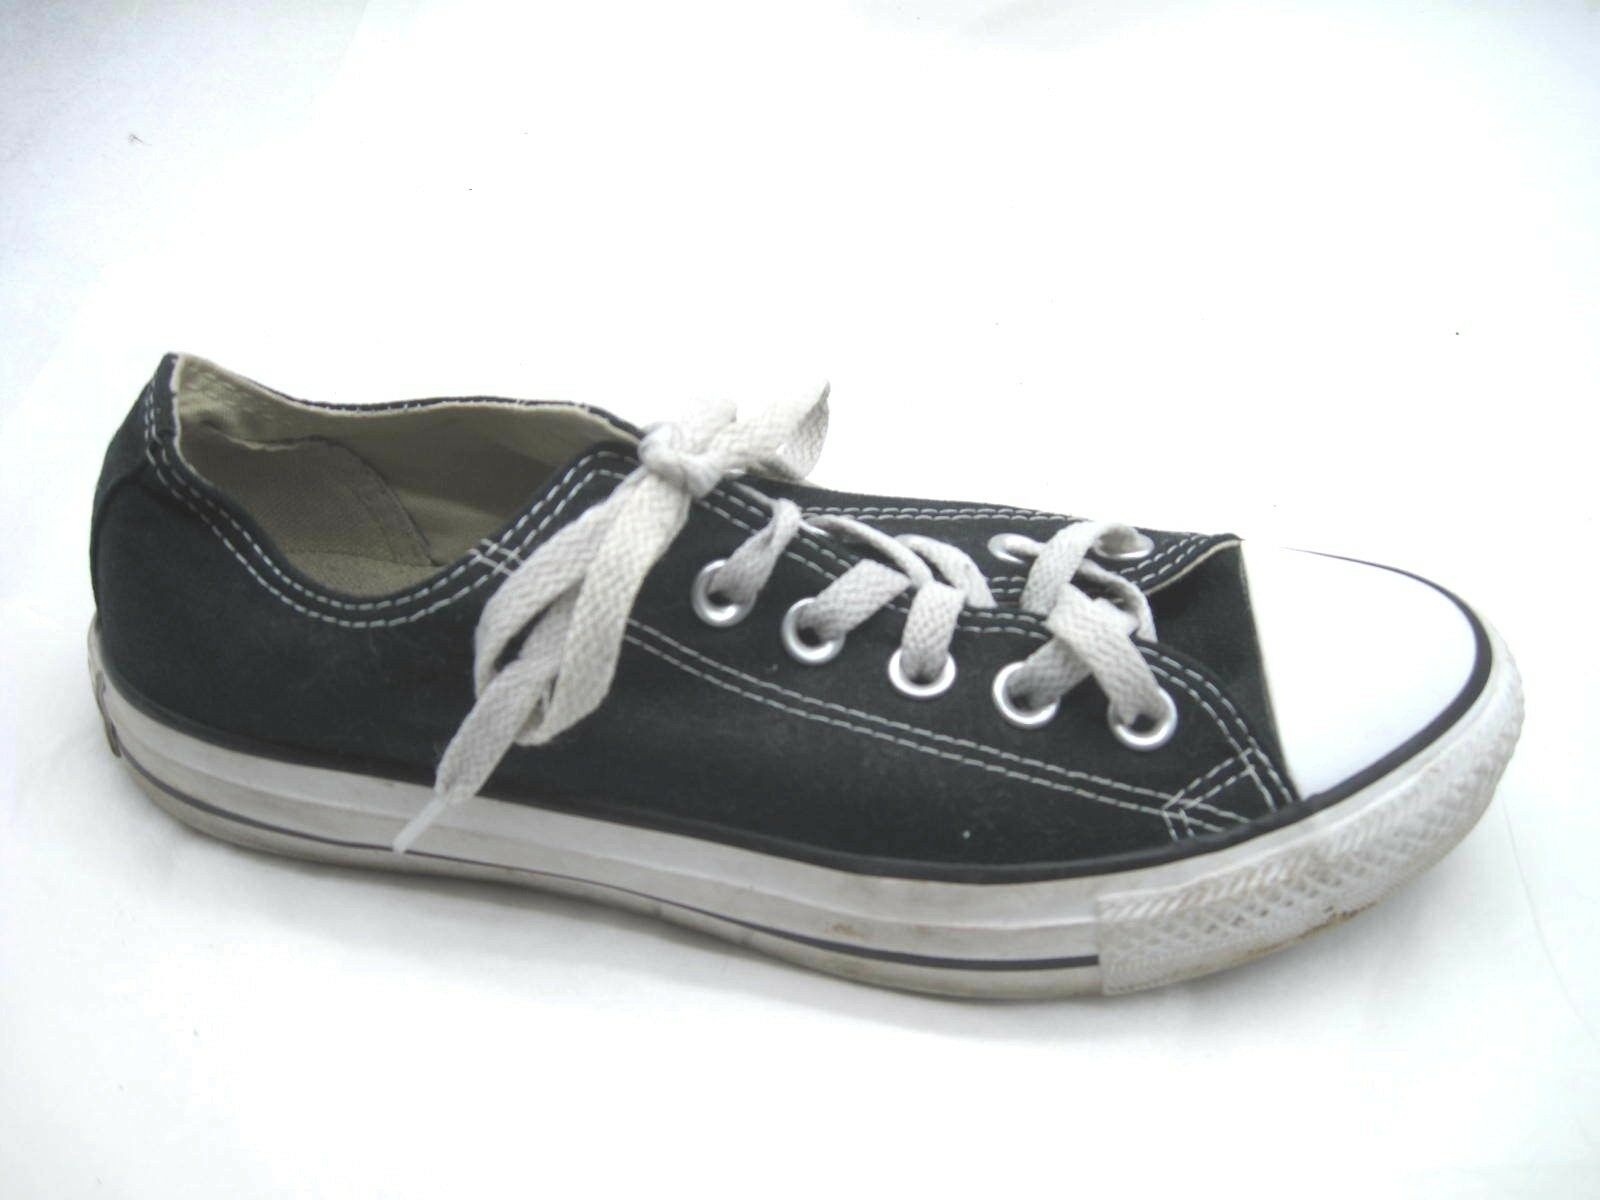 Converse All Star black womens canvas 7M sneakers lowtops tennis shoes M9166